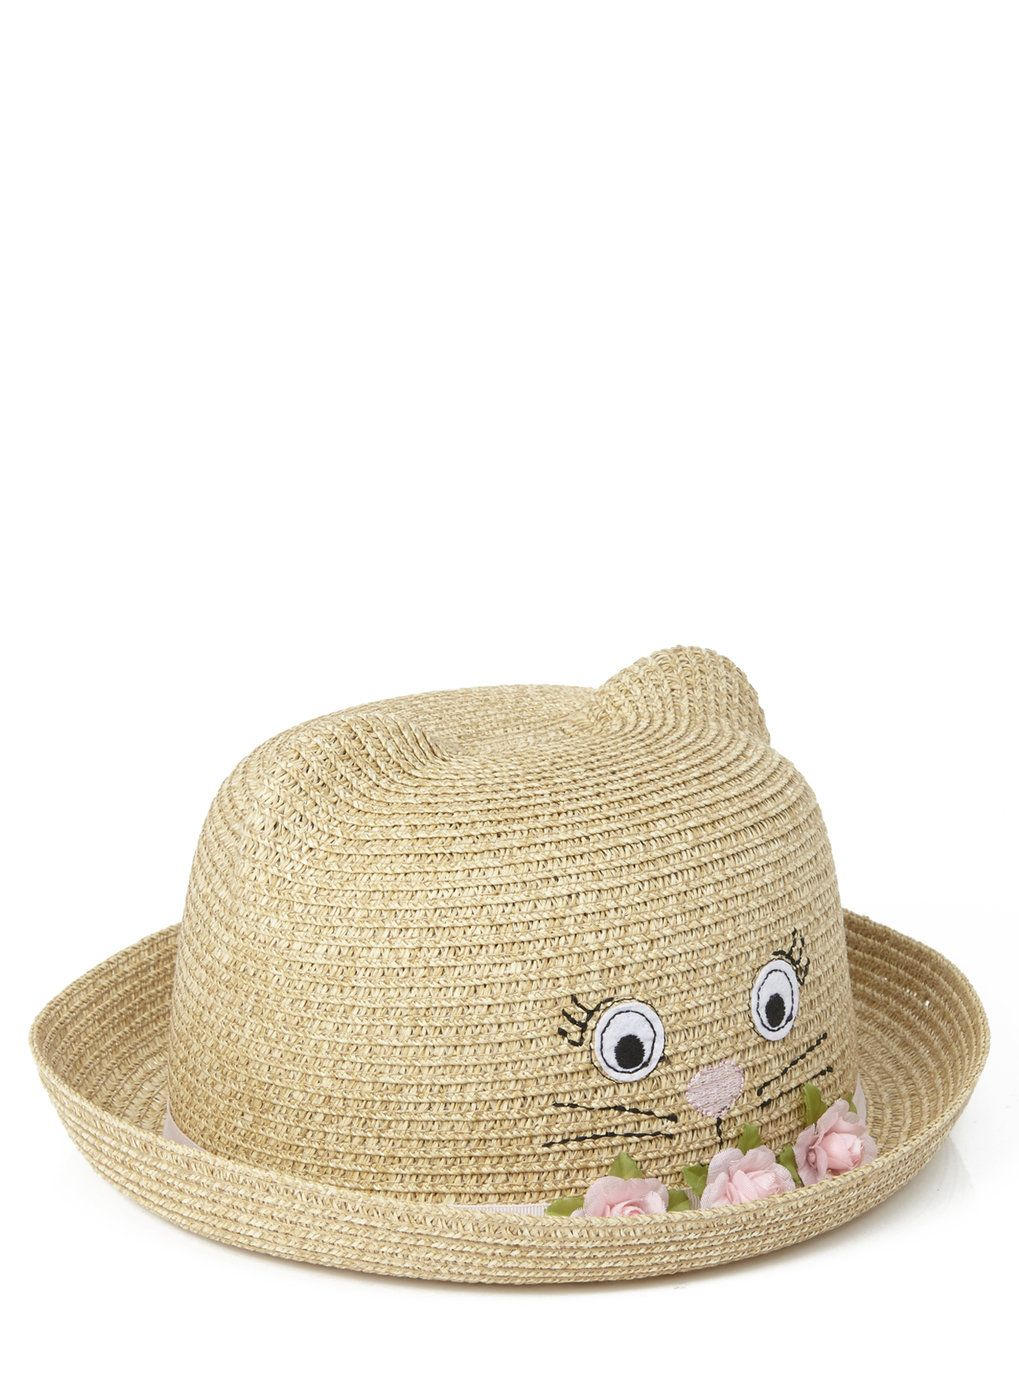 18c8d39d90a Girls Cat Straw Bowler Hat - Kids Sunglasses   Accessories - Holiday Shop -  BHS